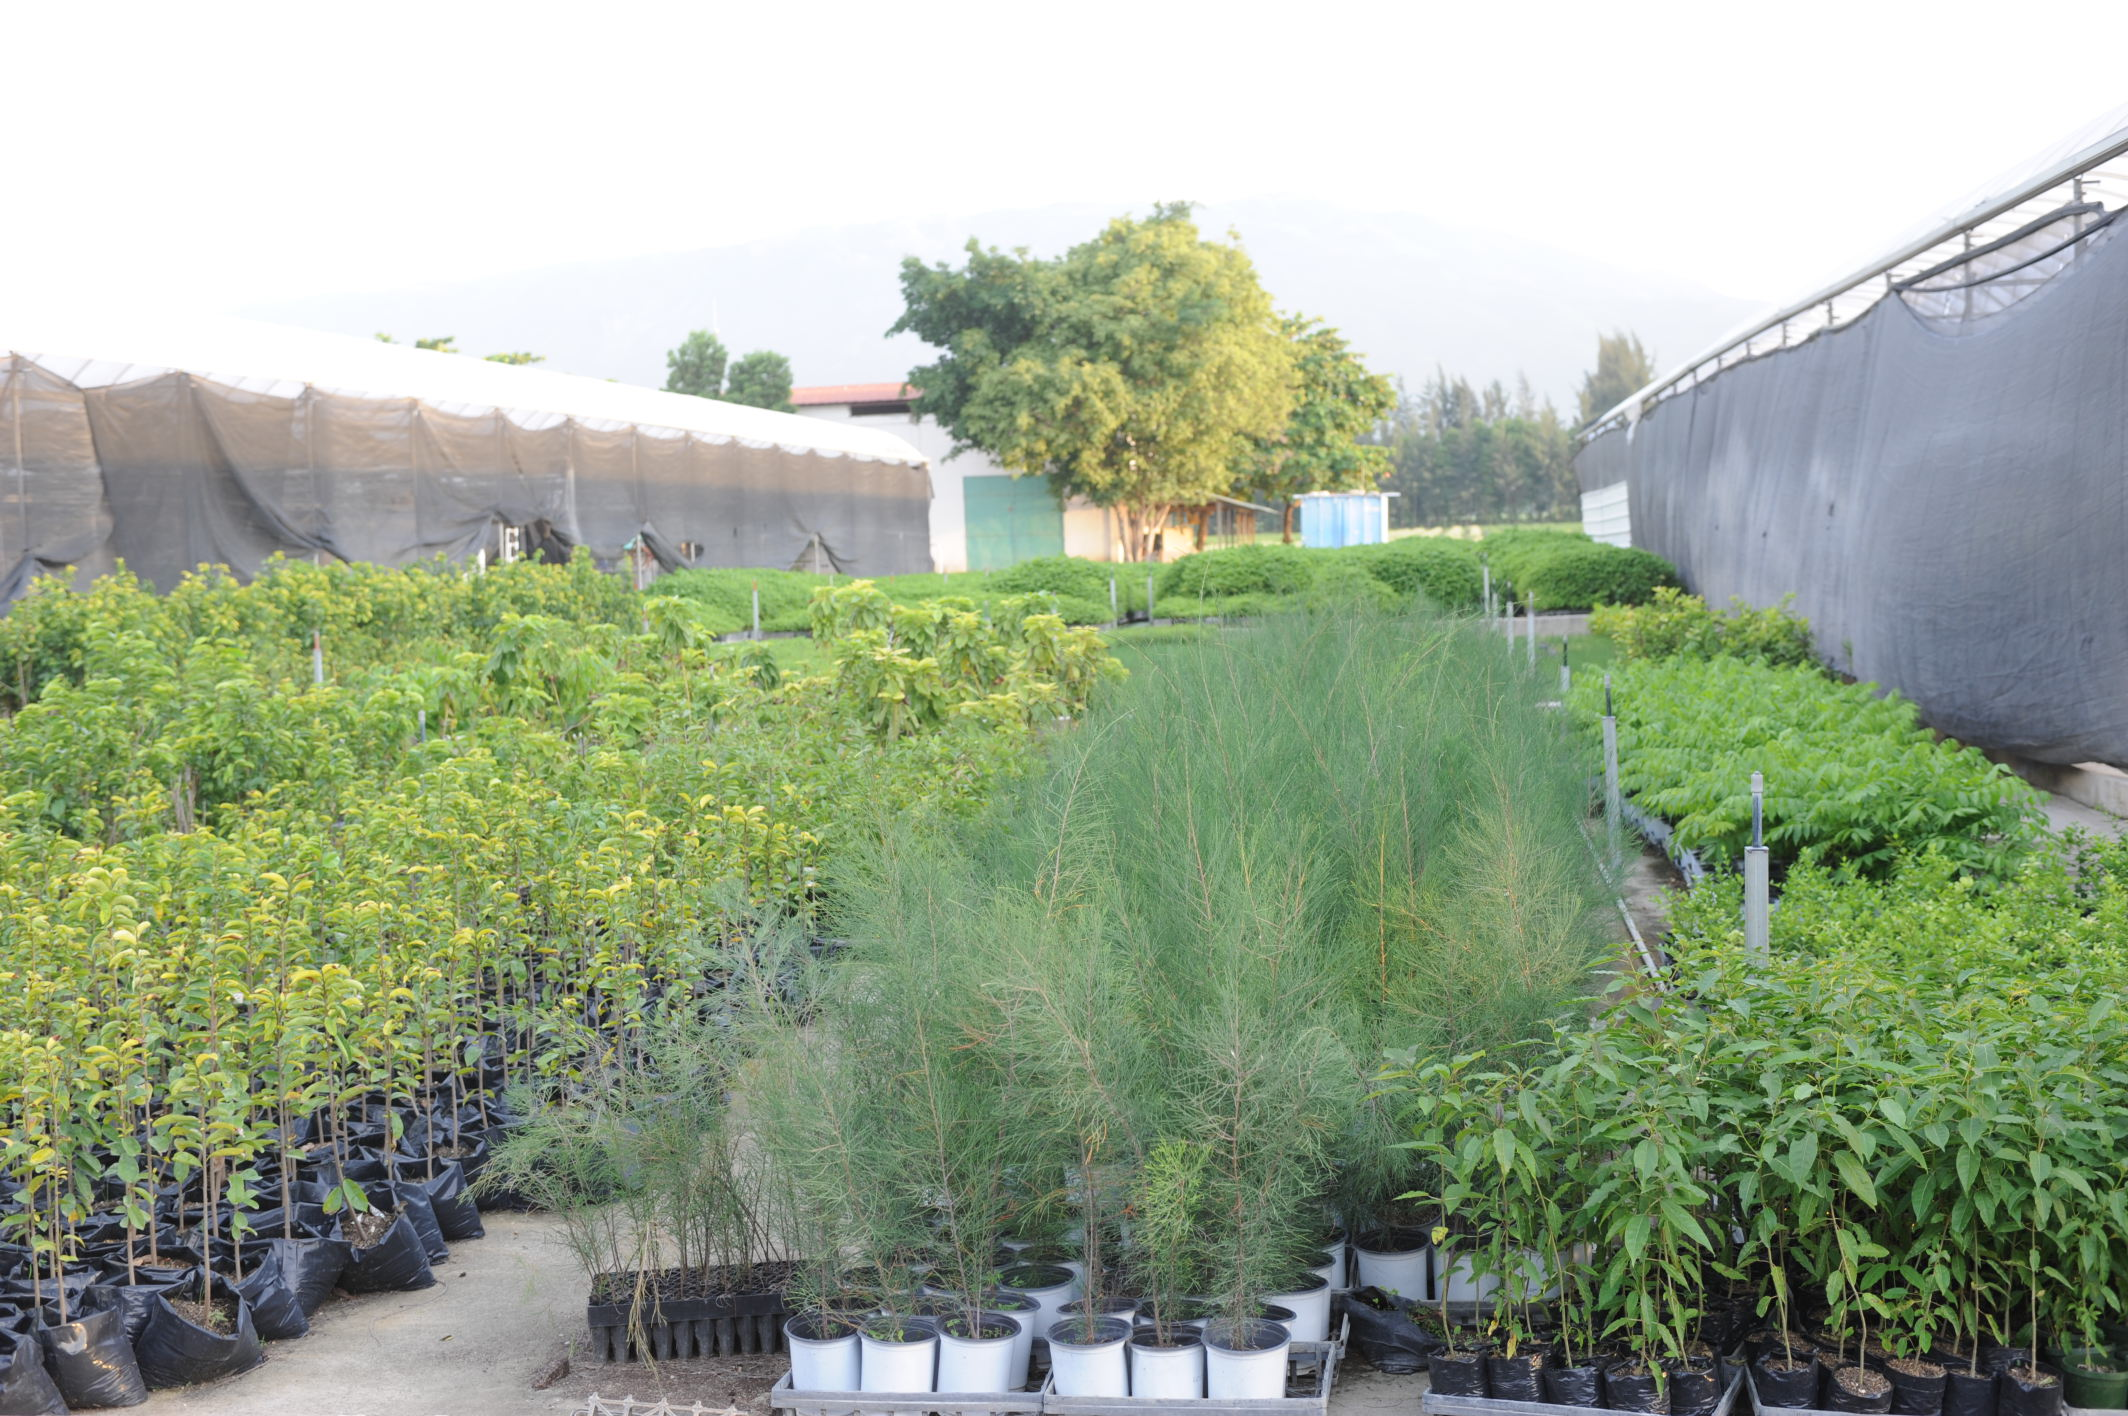 Tree Seedlings for Reforestation